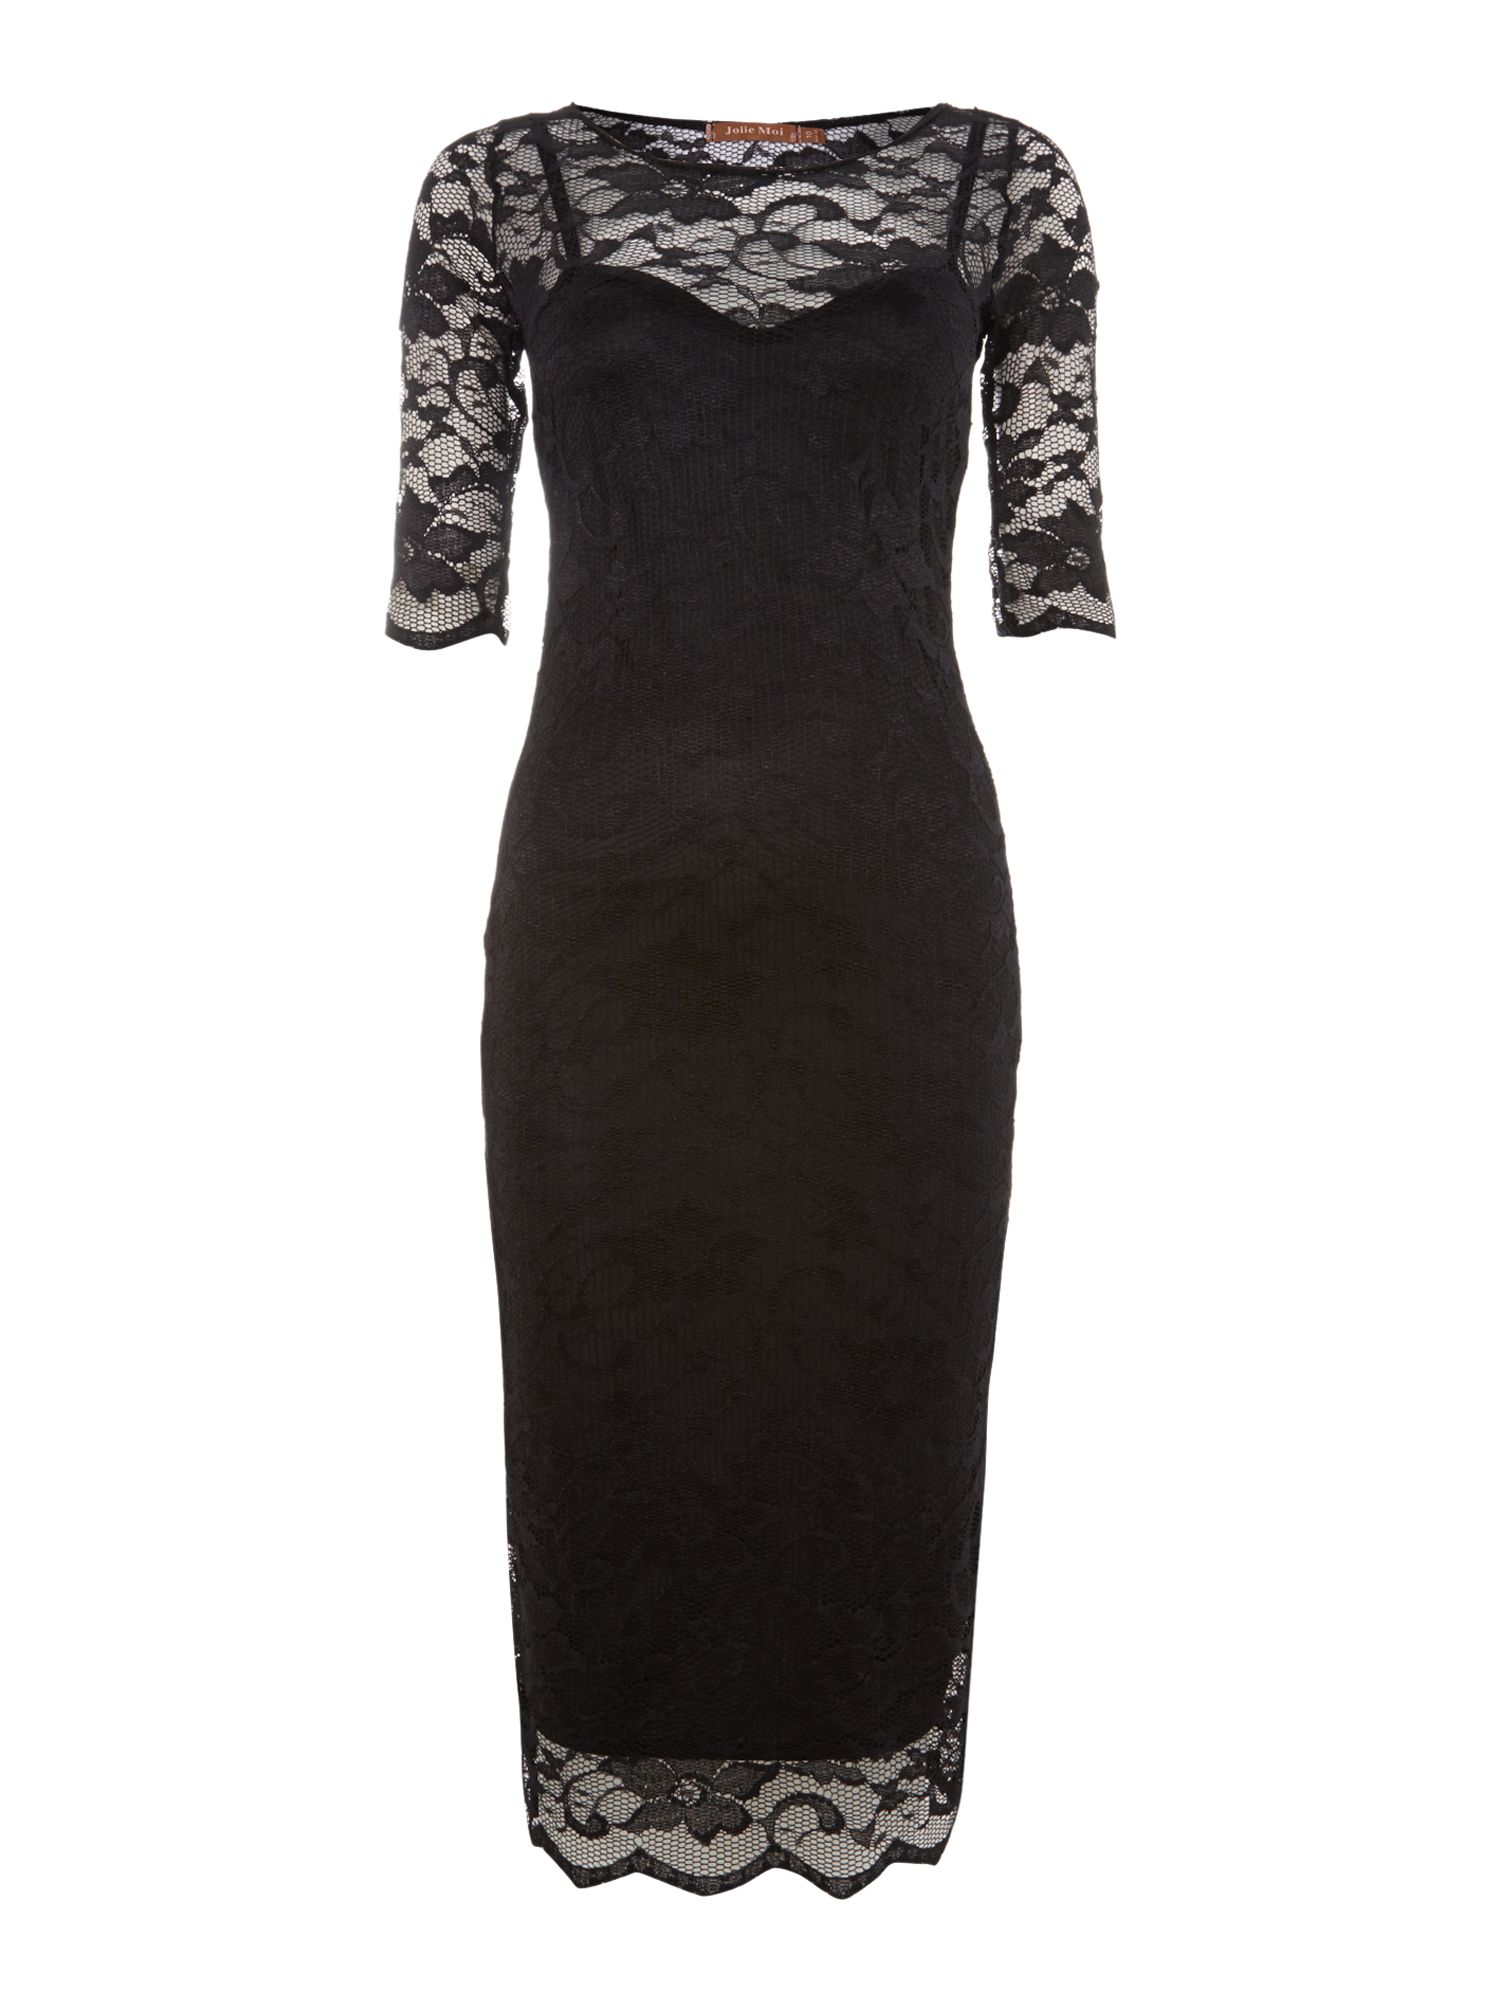 2in1 lace midi dress